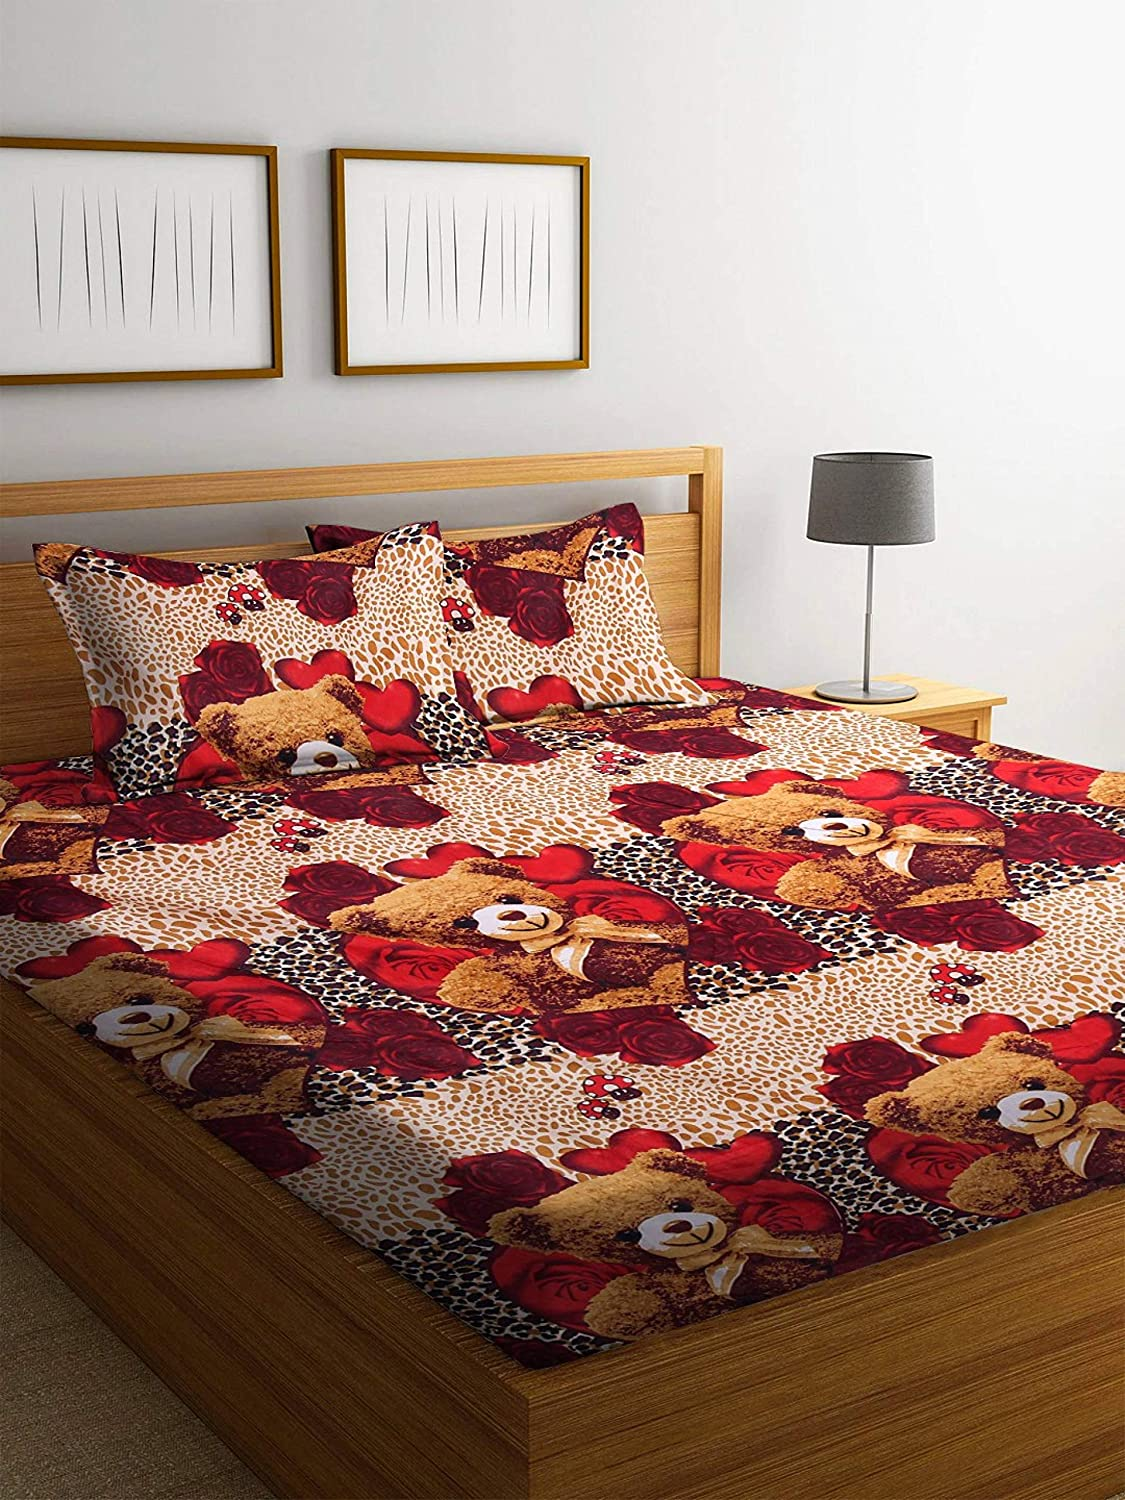 Exopick 144 TC Cotton Double 3D Printed Bedsheet (Pack of 1, Brown)